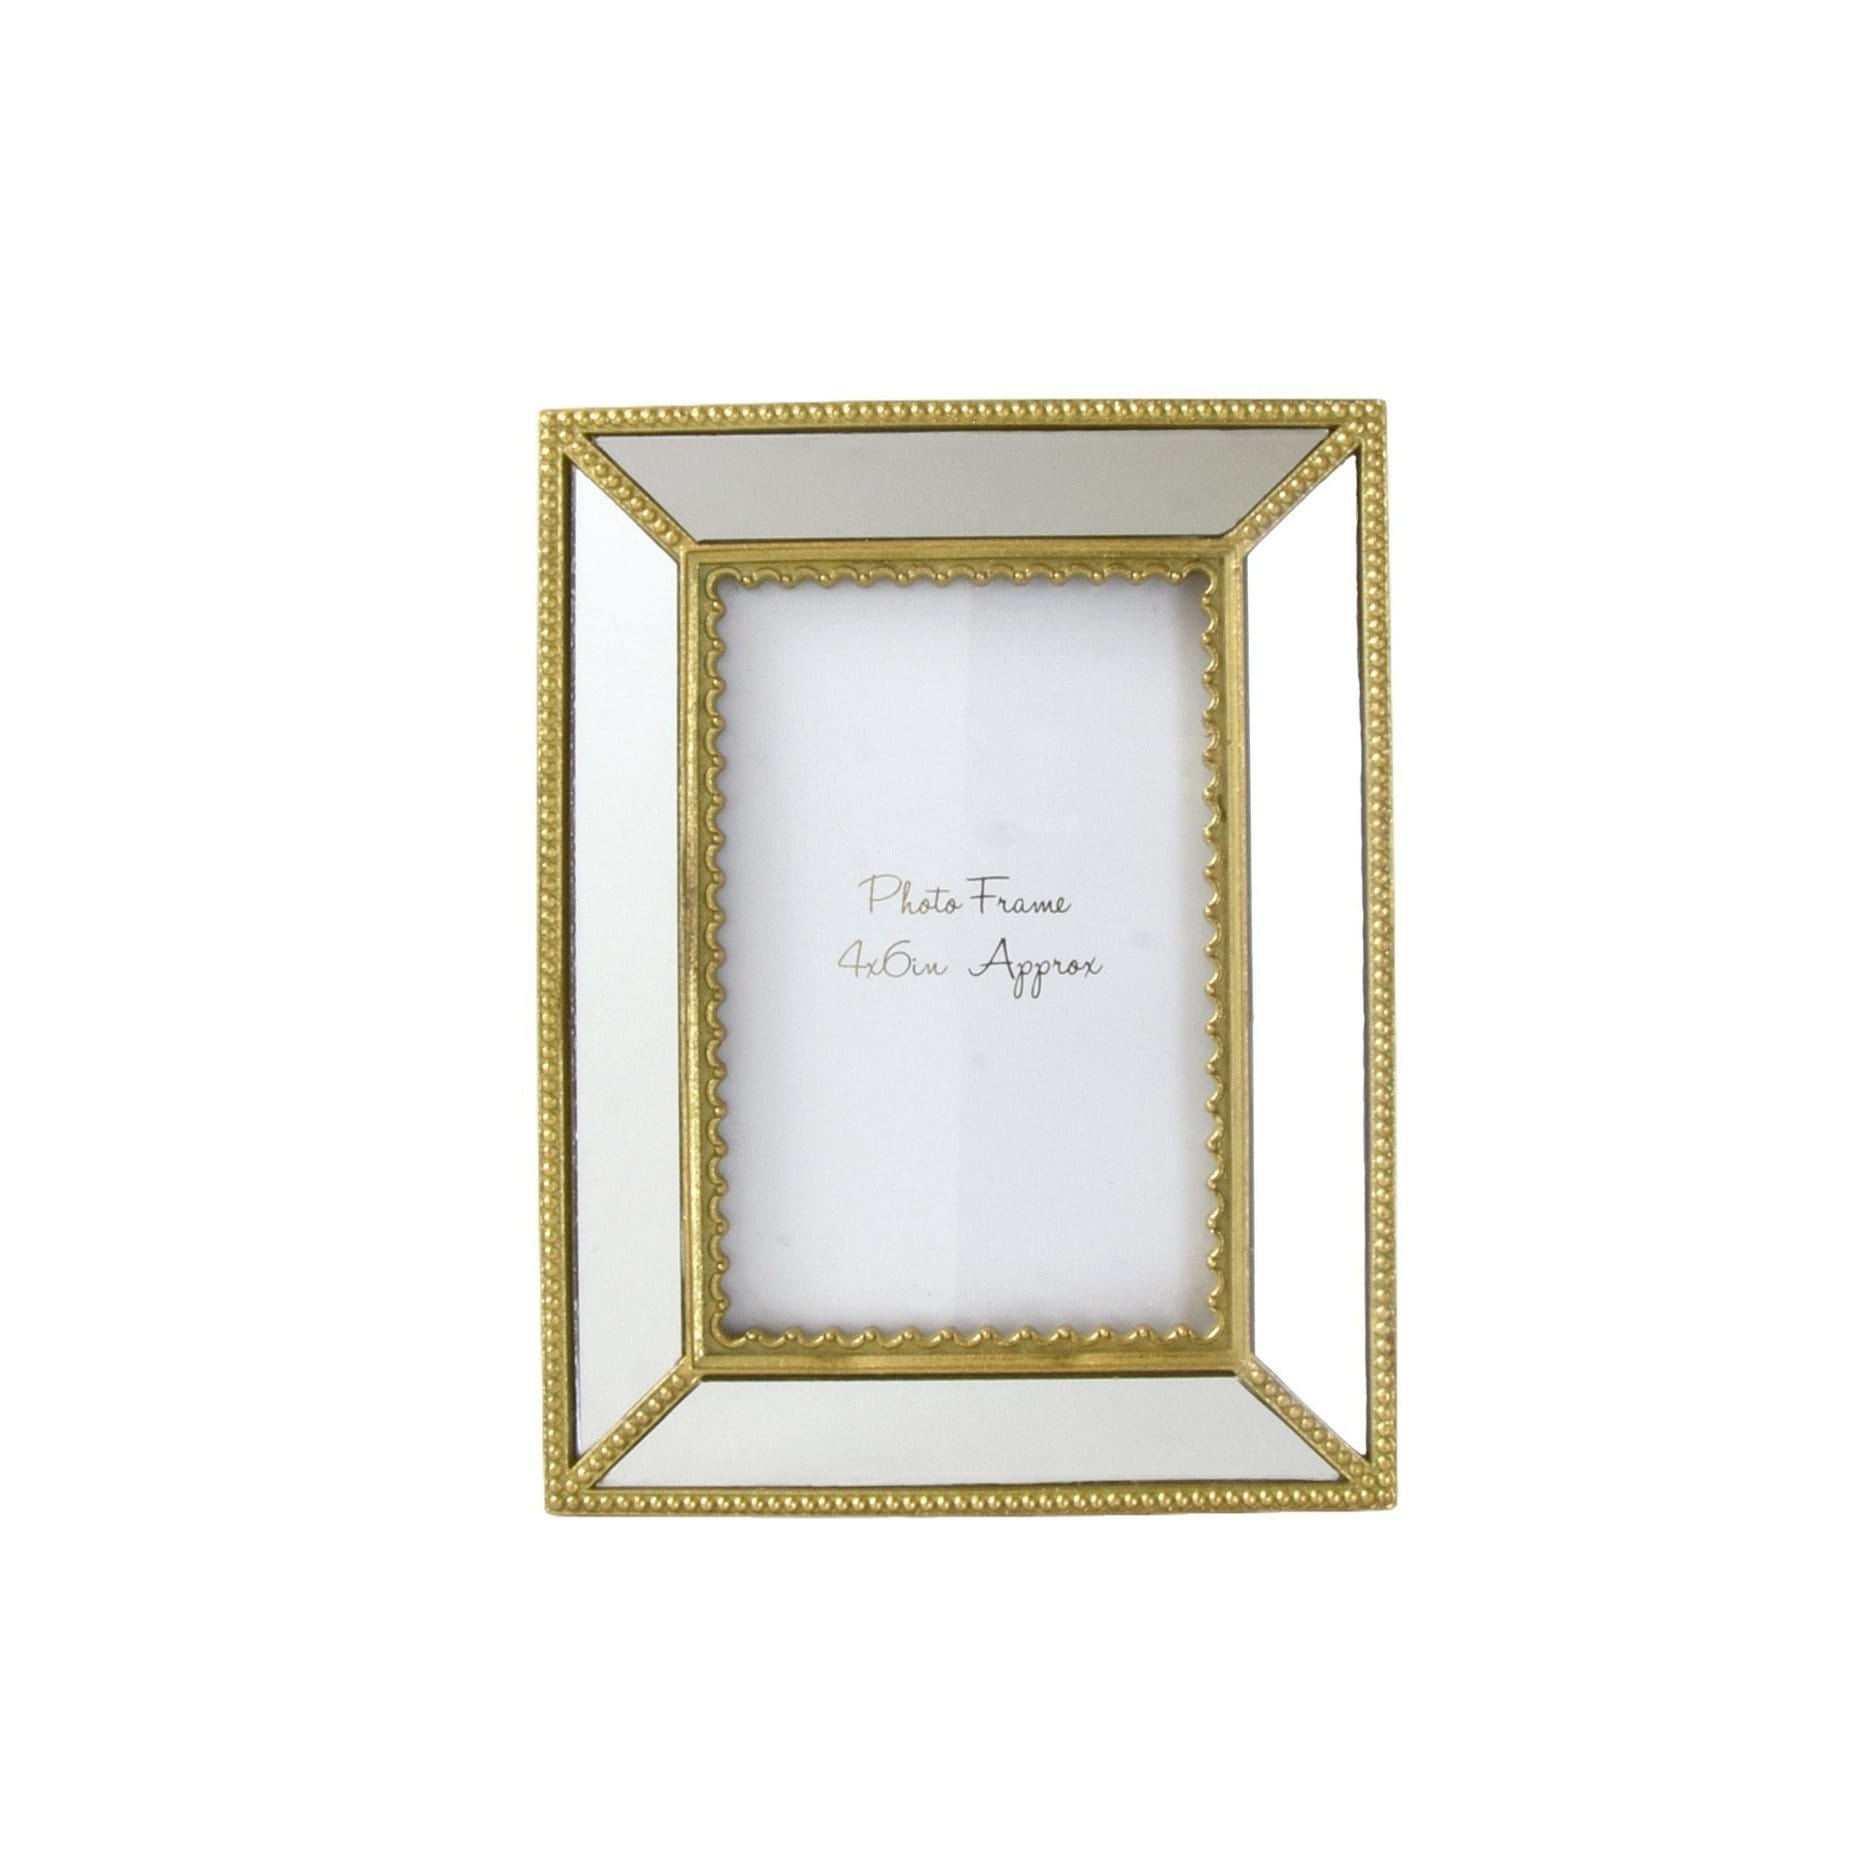 "Ornate Photo frame with Mirrored Panels and Gold Ornate Edge 4""x6"" 1PK"